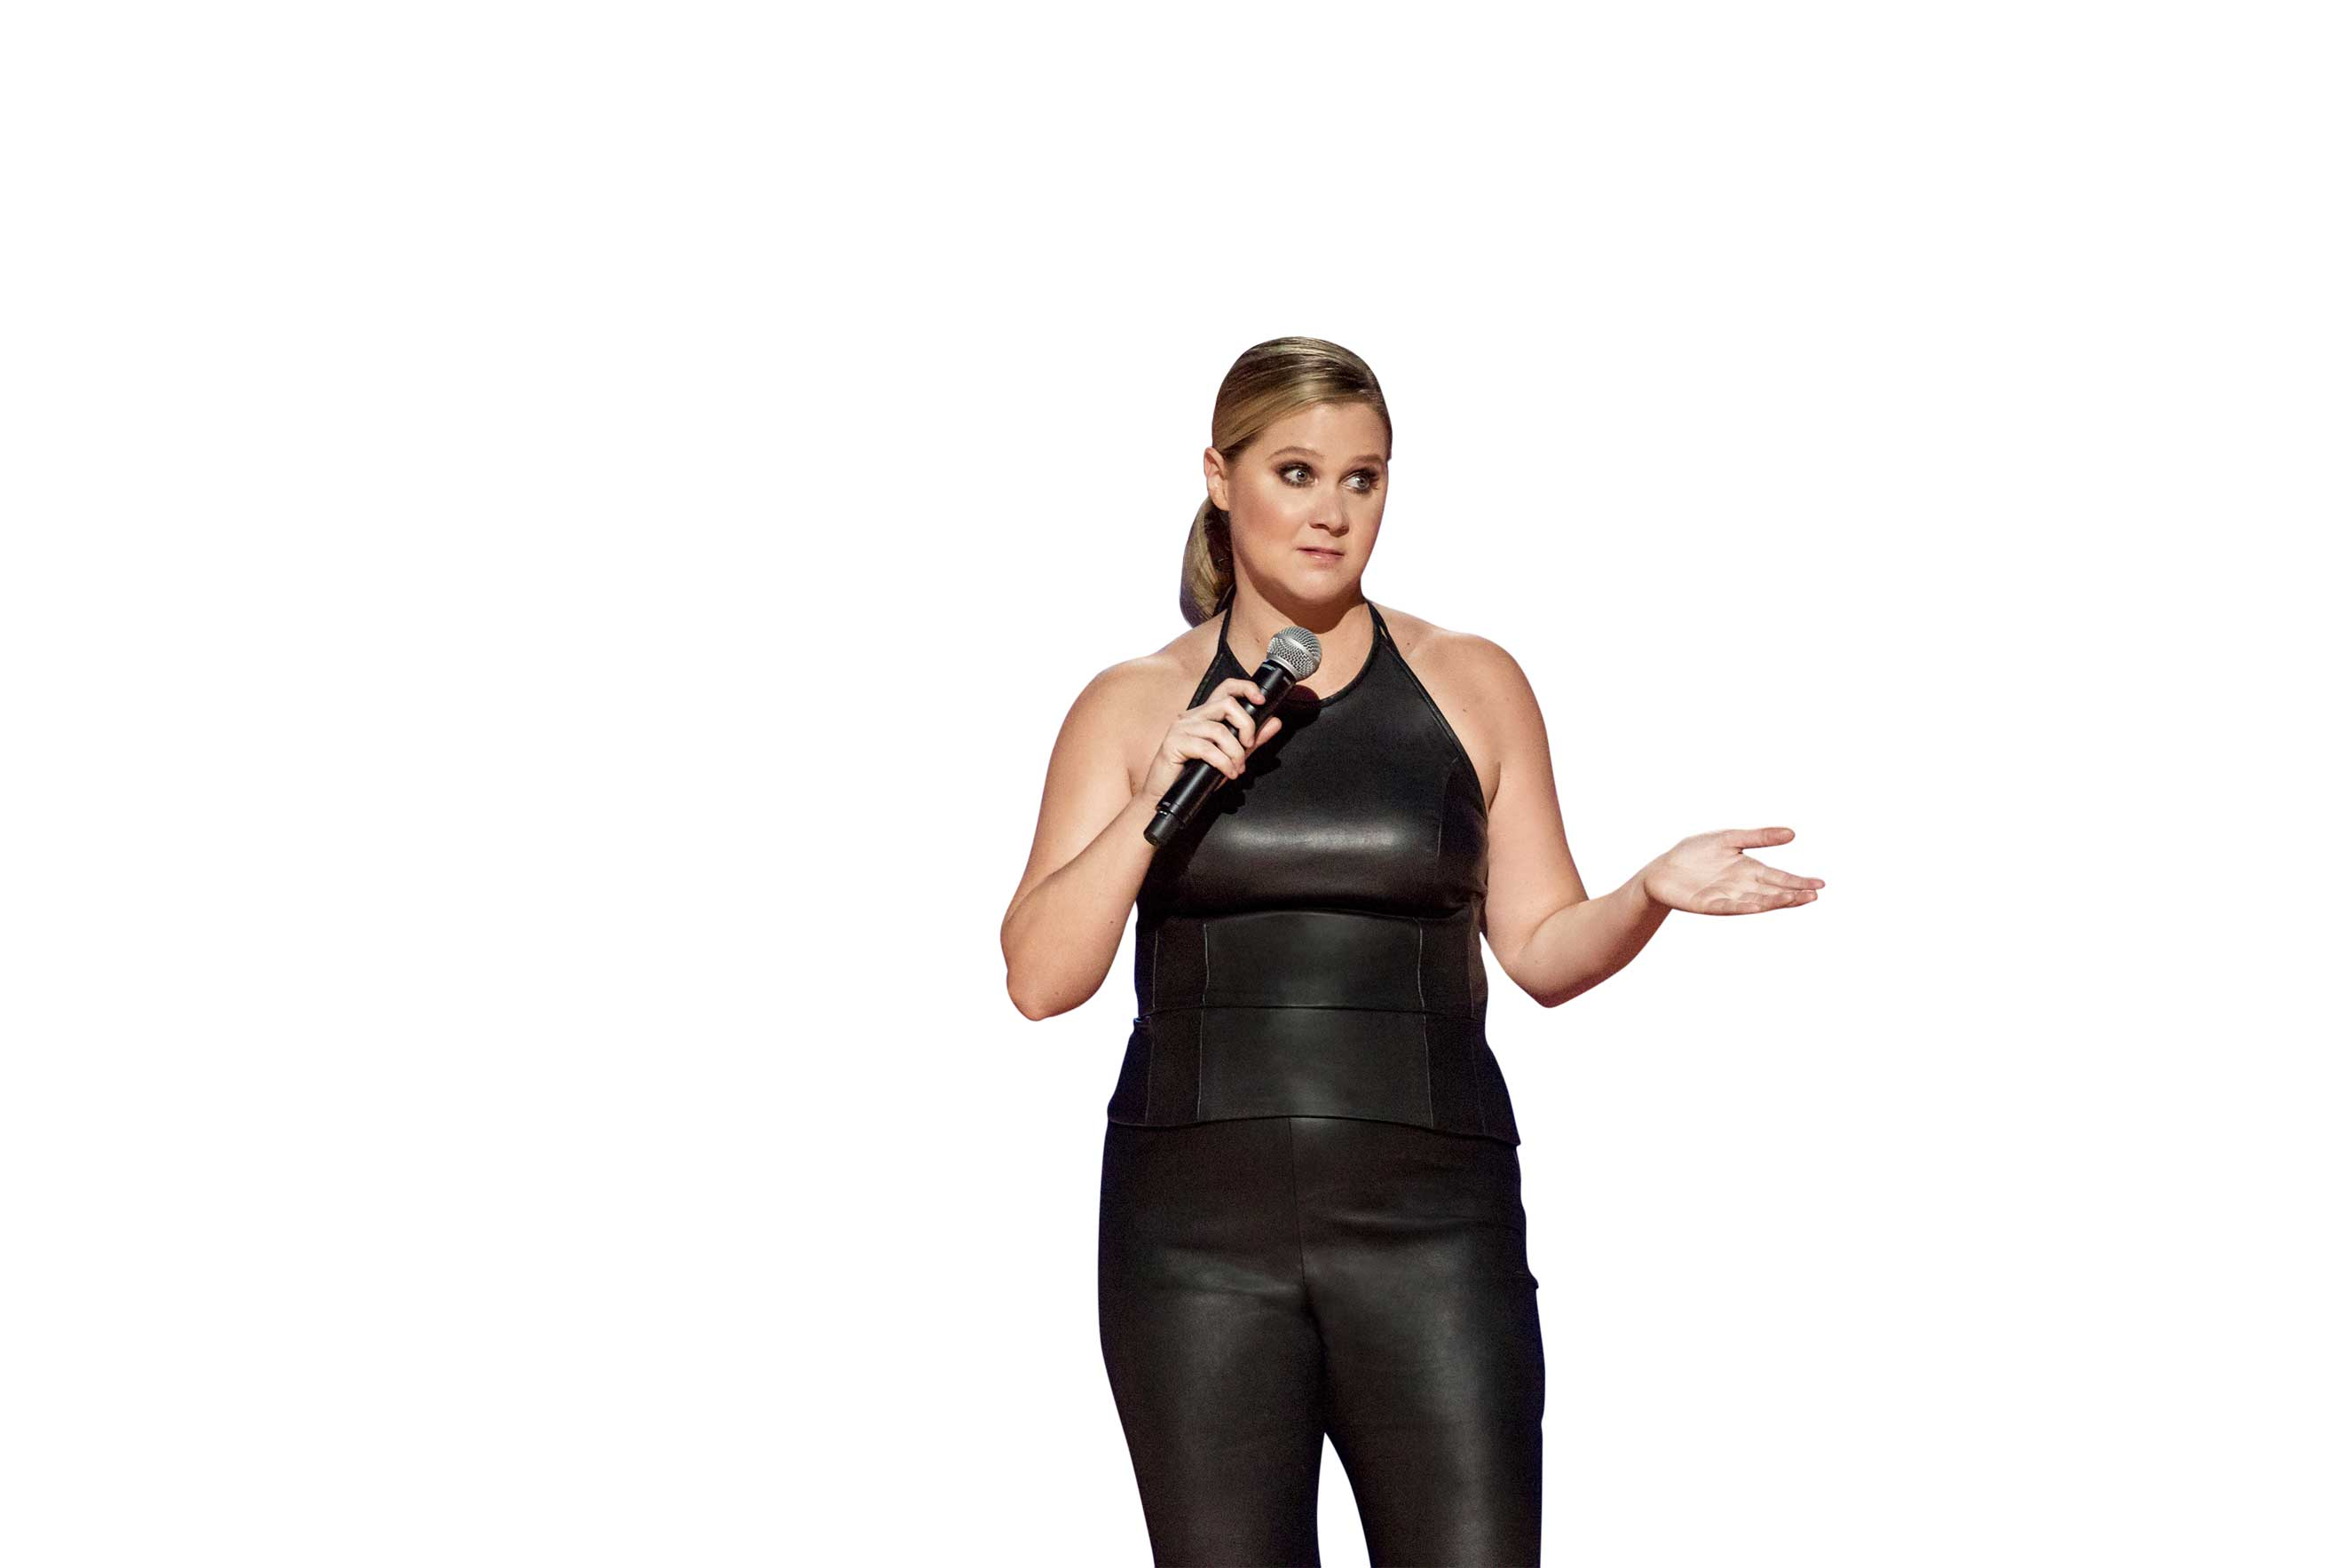 Amy Schumer: The Leather Special on Netflix